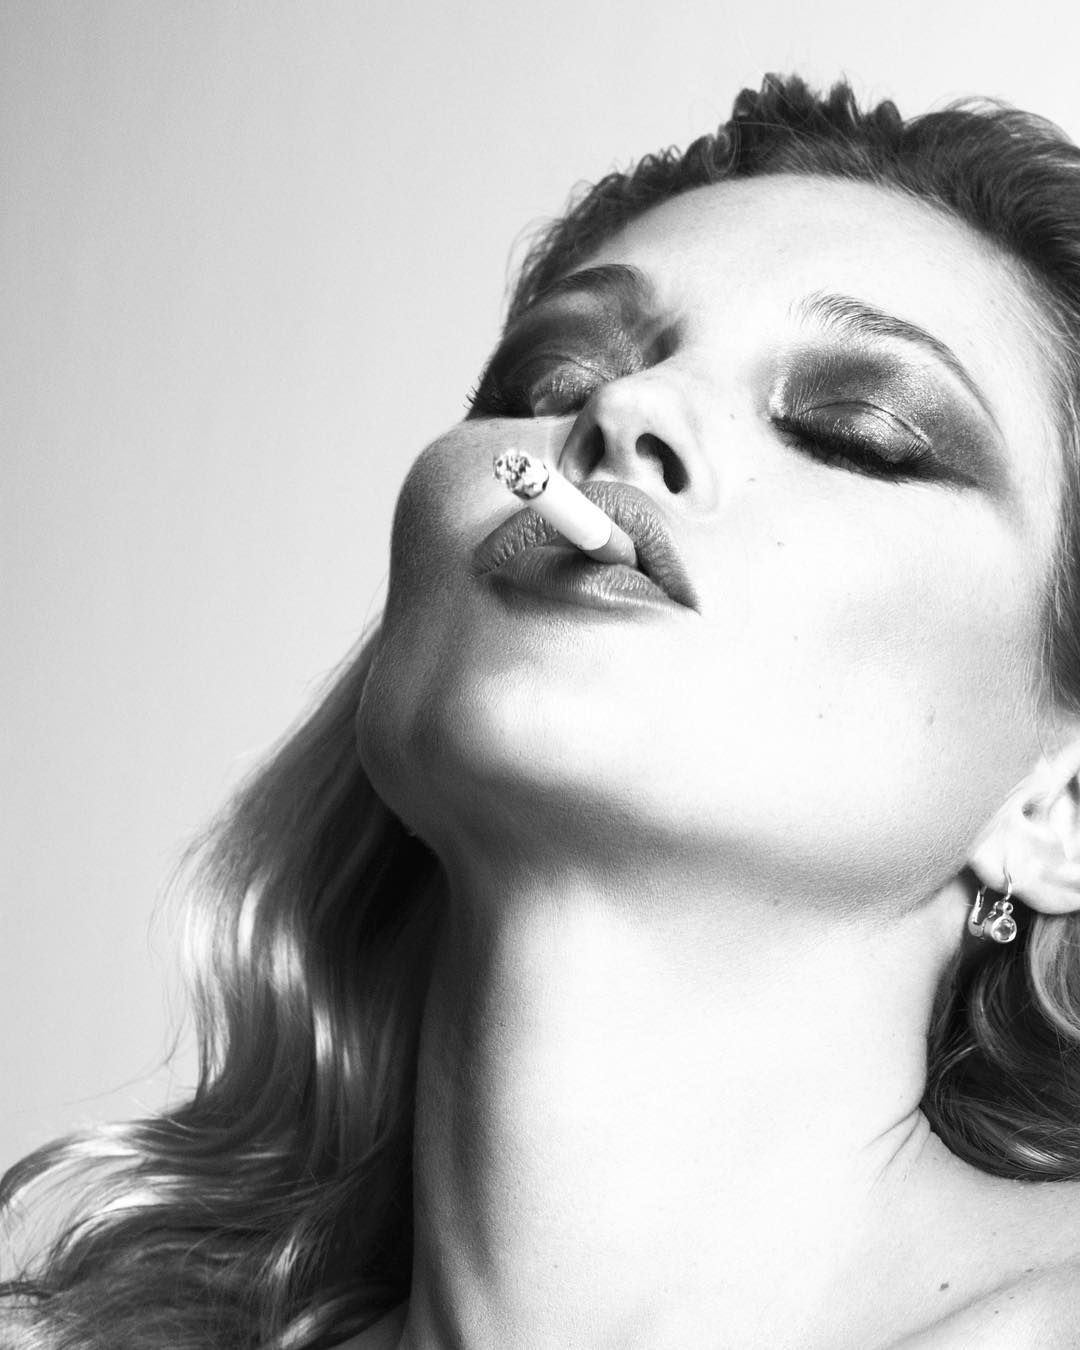 Photographybook Ideas: The Inimitable #KateMoss In 2009 @thelovemagazine Shot By